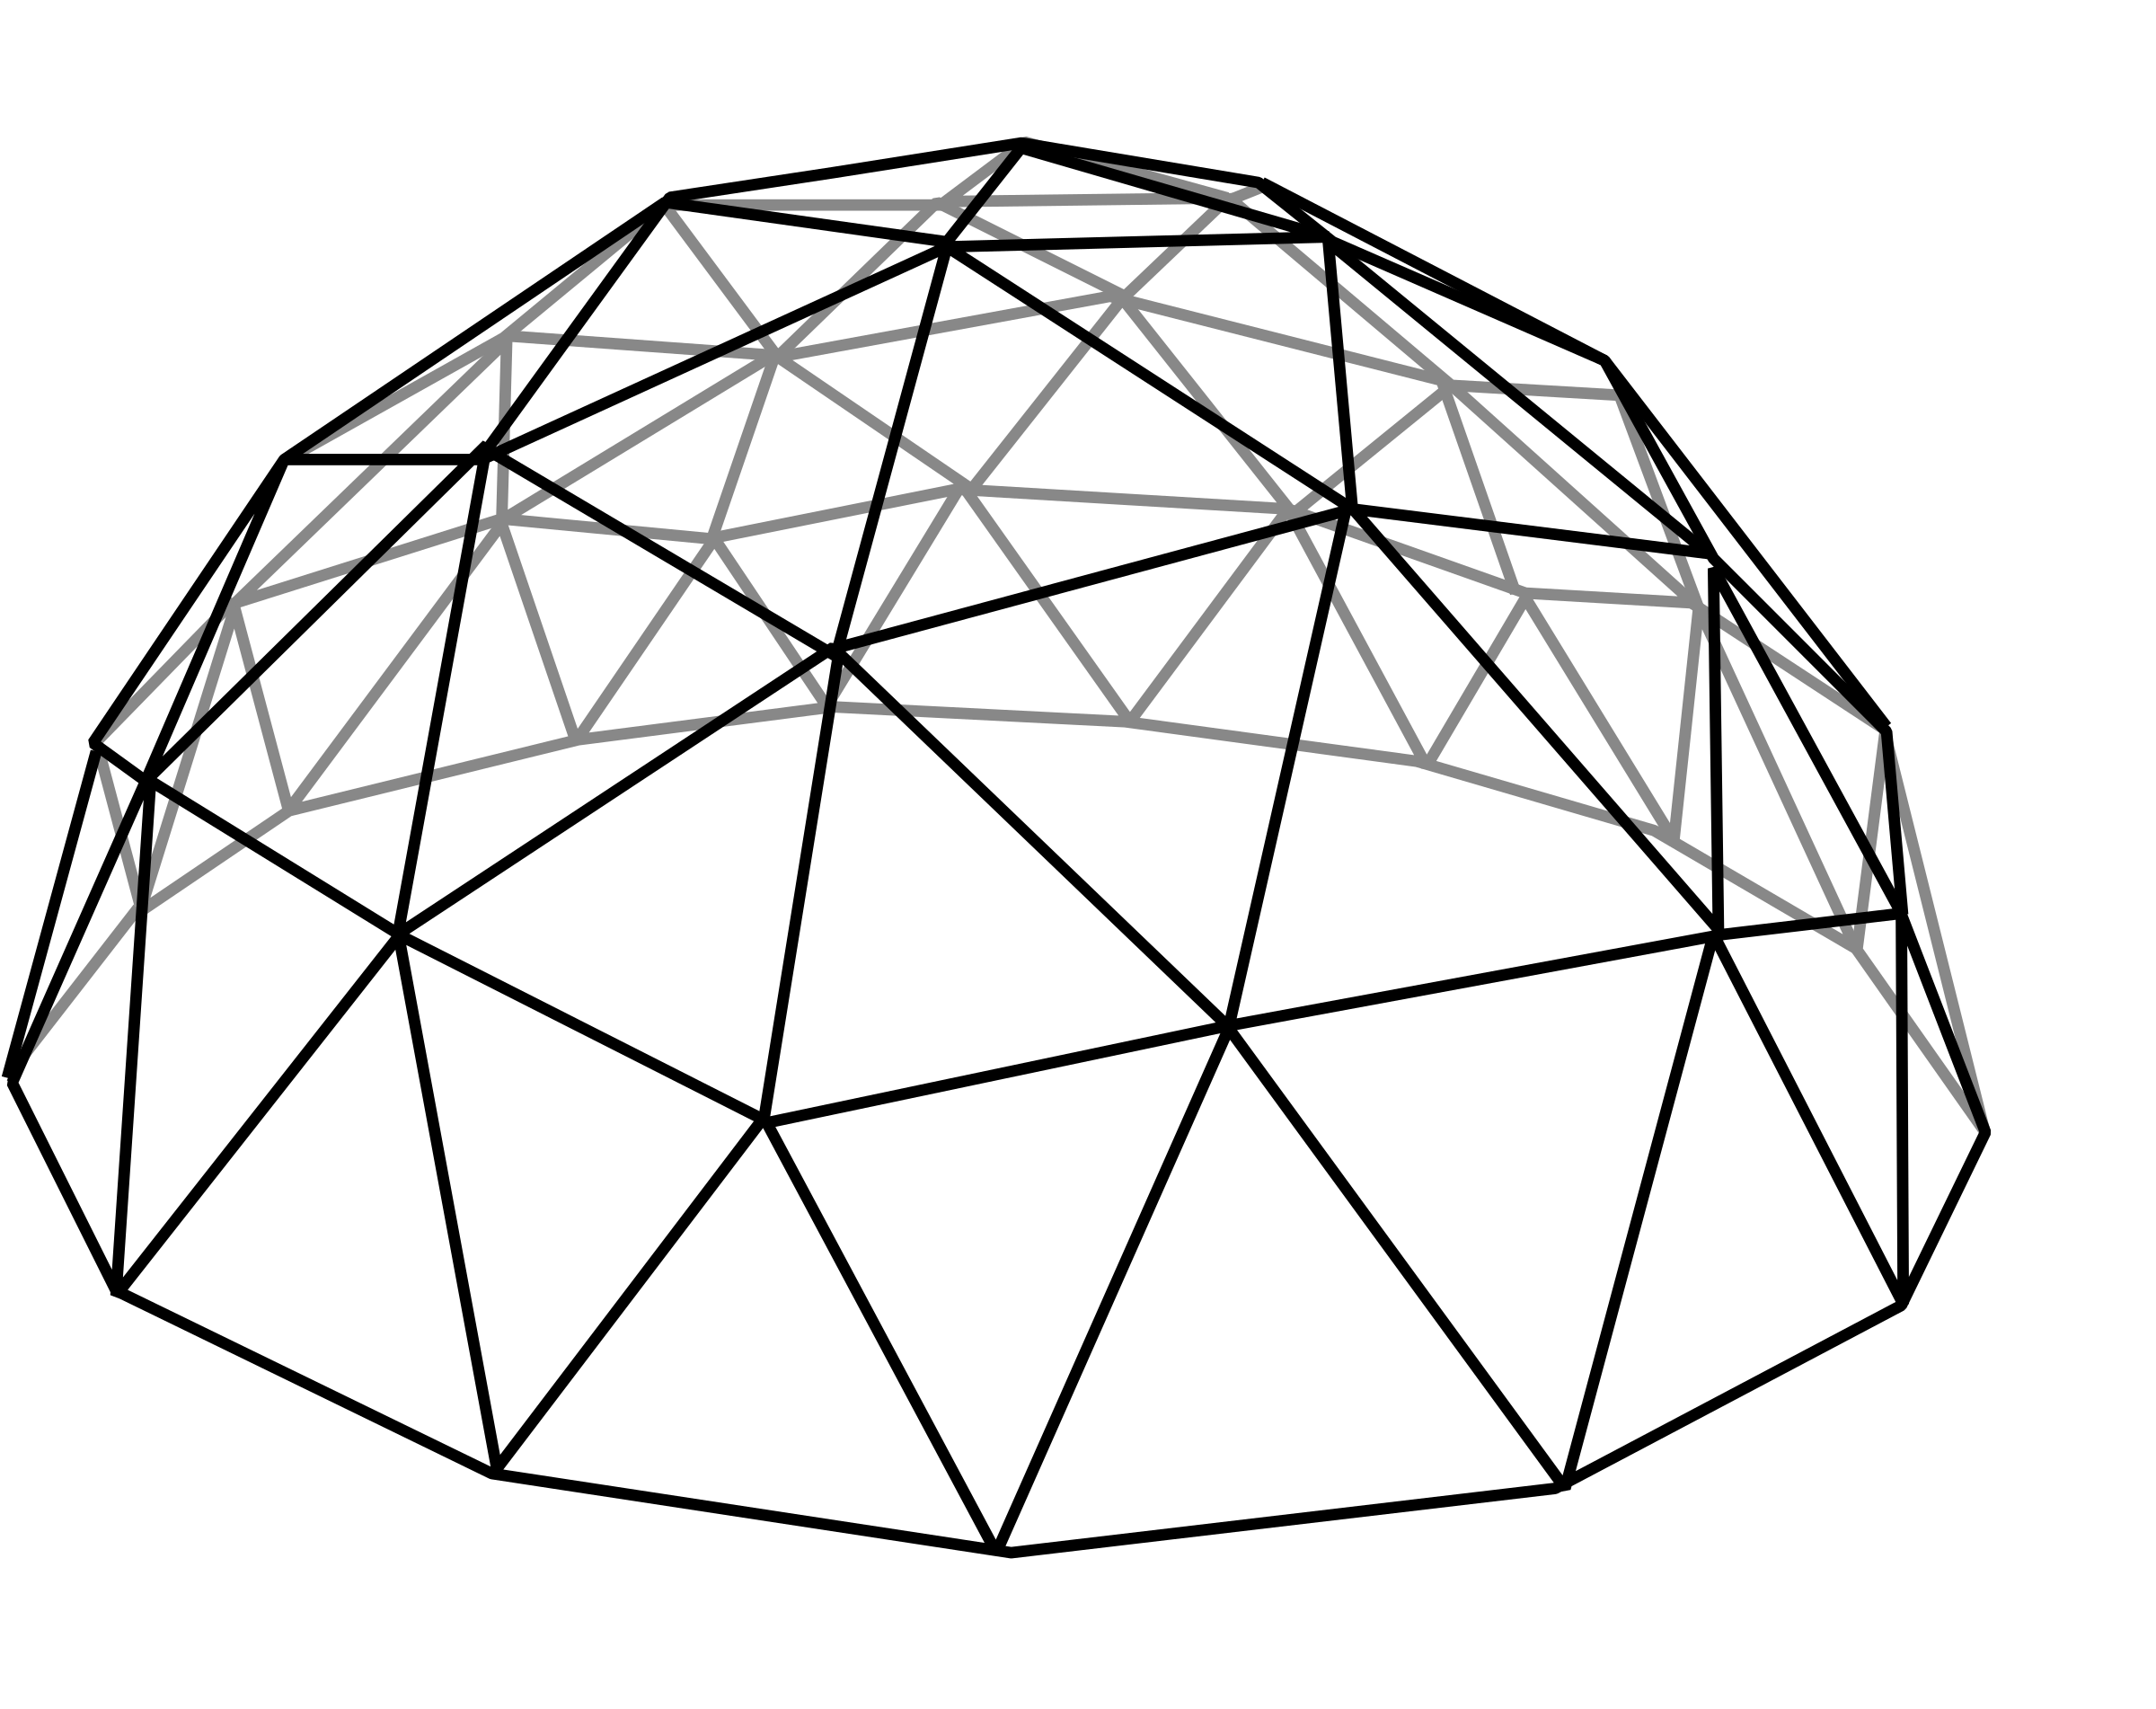 clip royalty free library Geodesic dome big image. Jungle gym clipart black and white